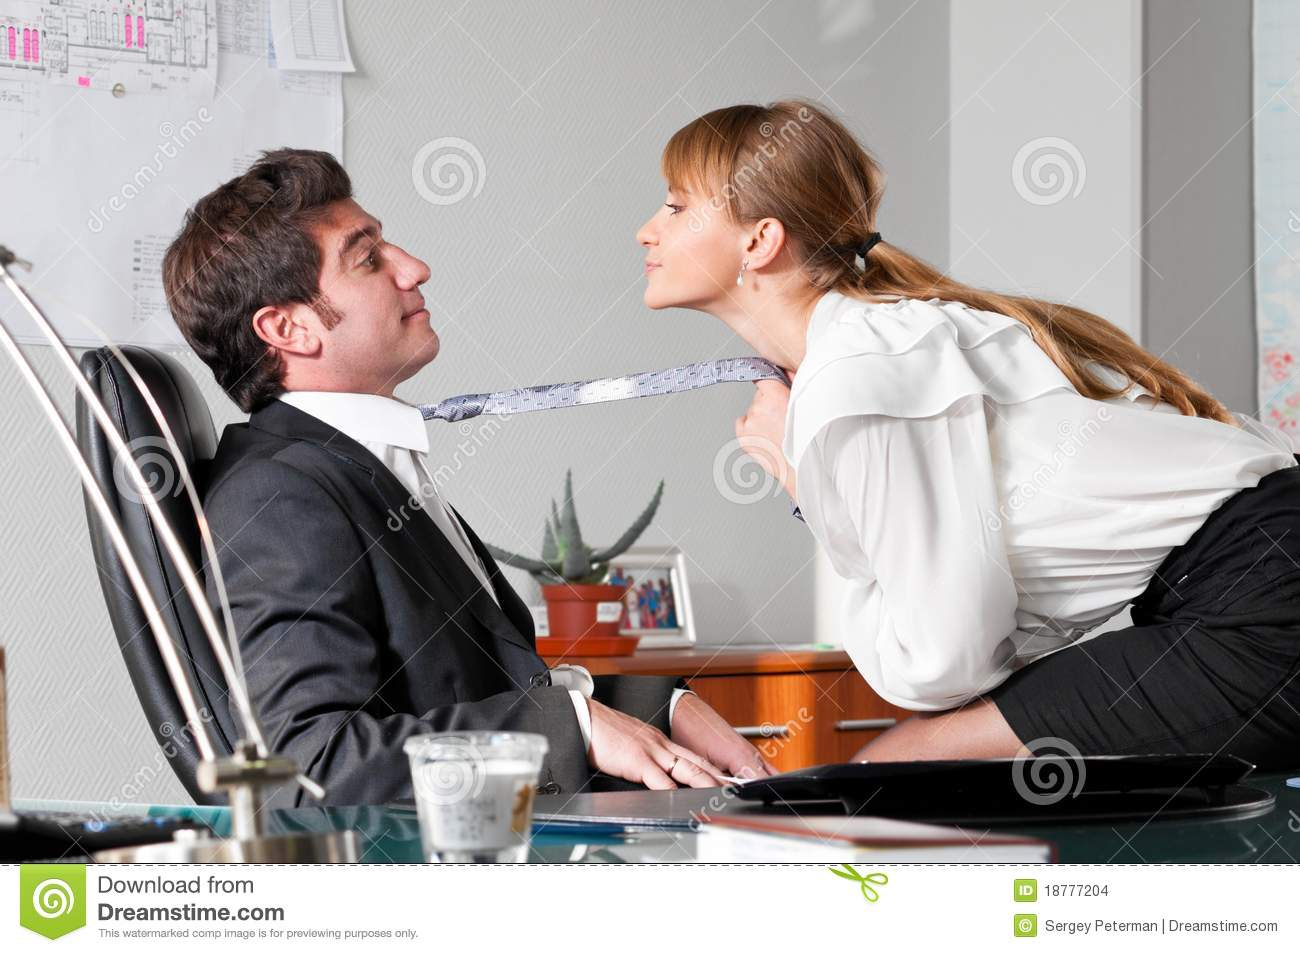 Flirting At Work Stock Images - Image: 18777204